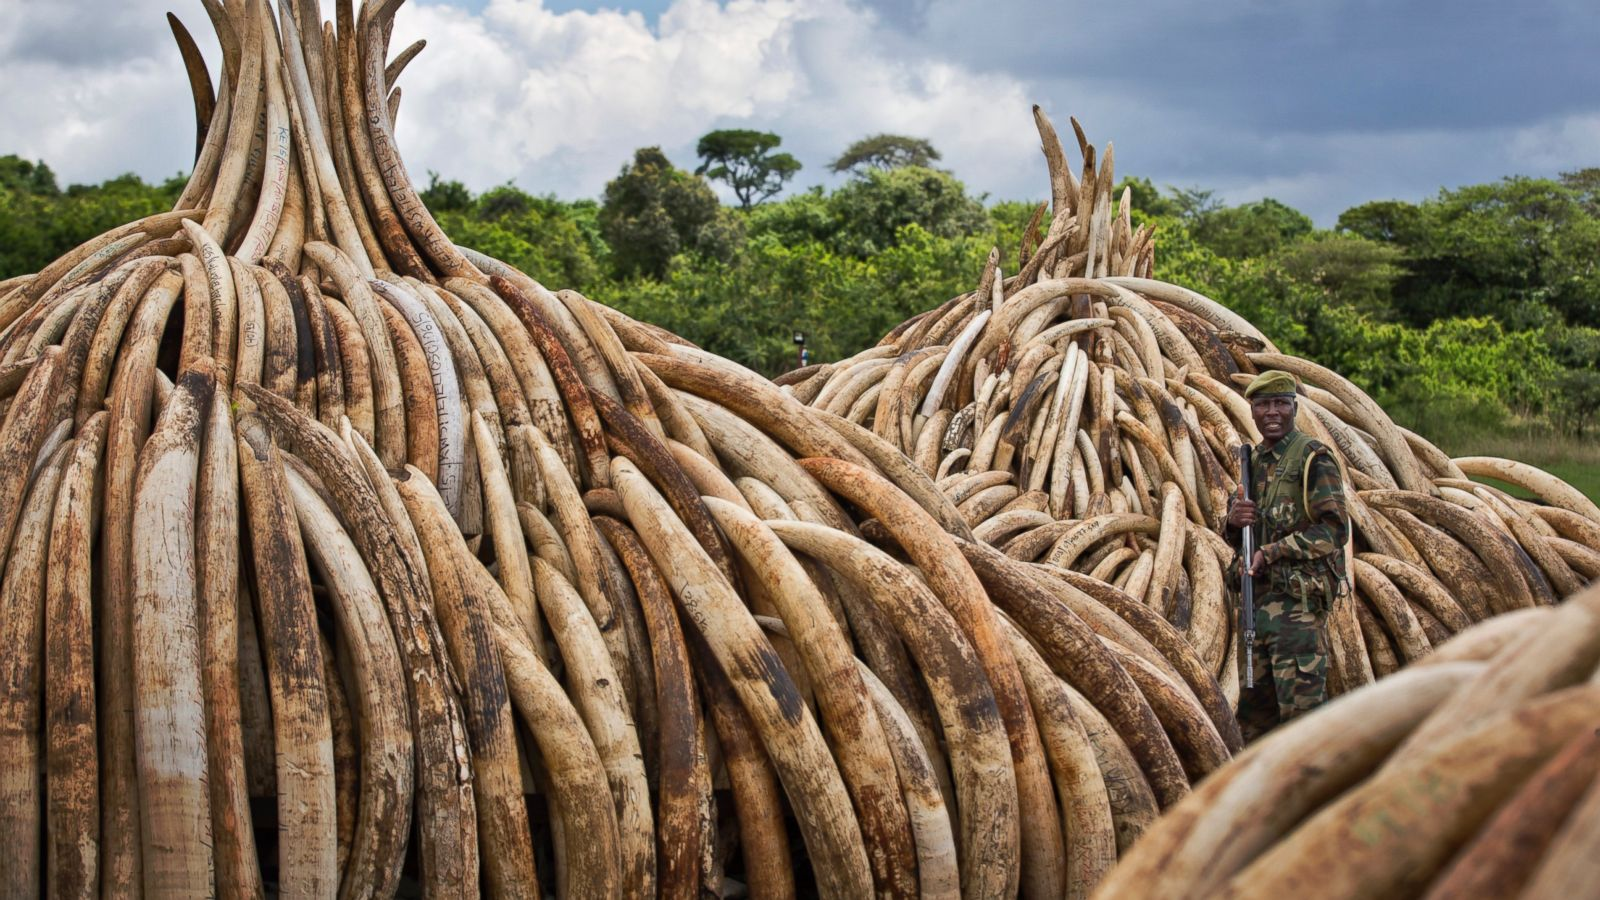 105 tons of ivory